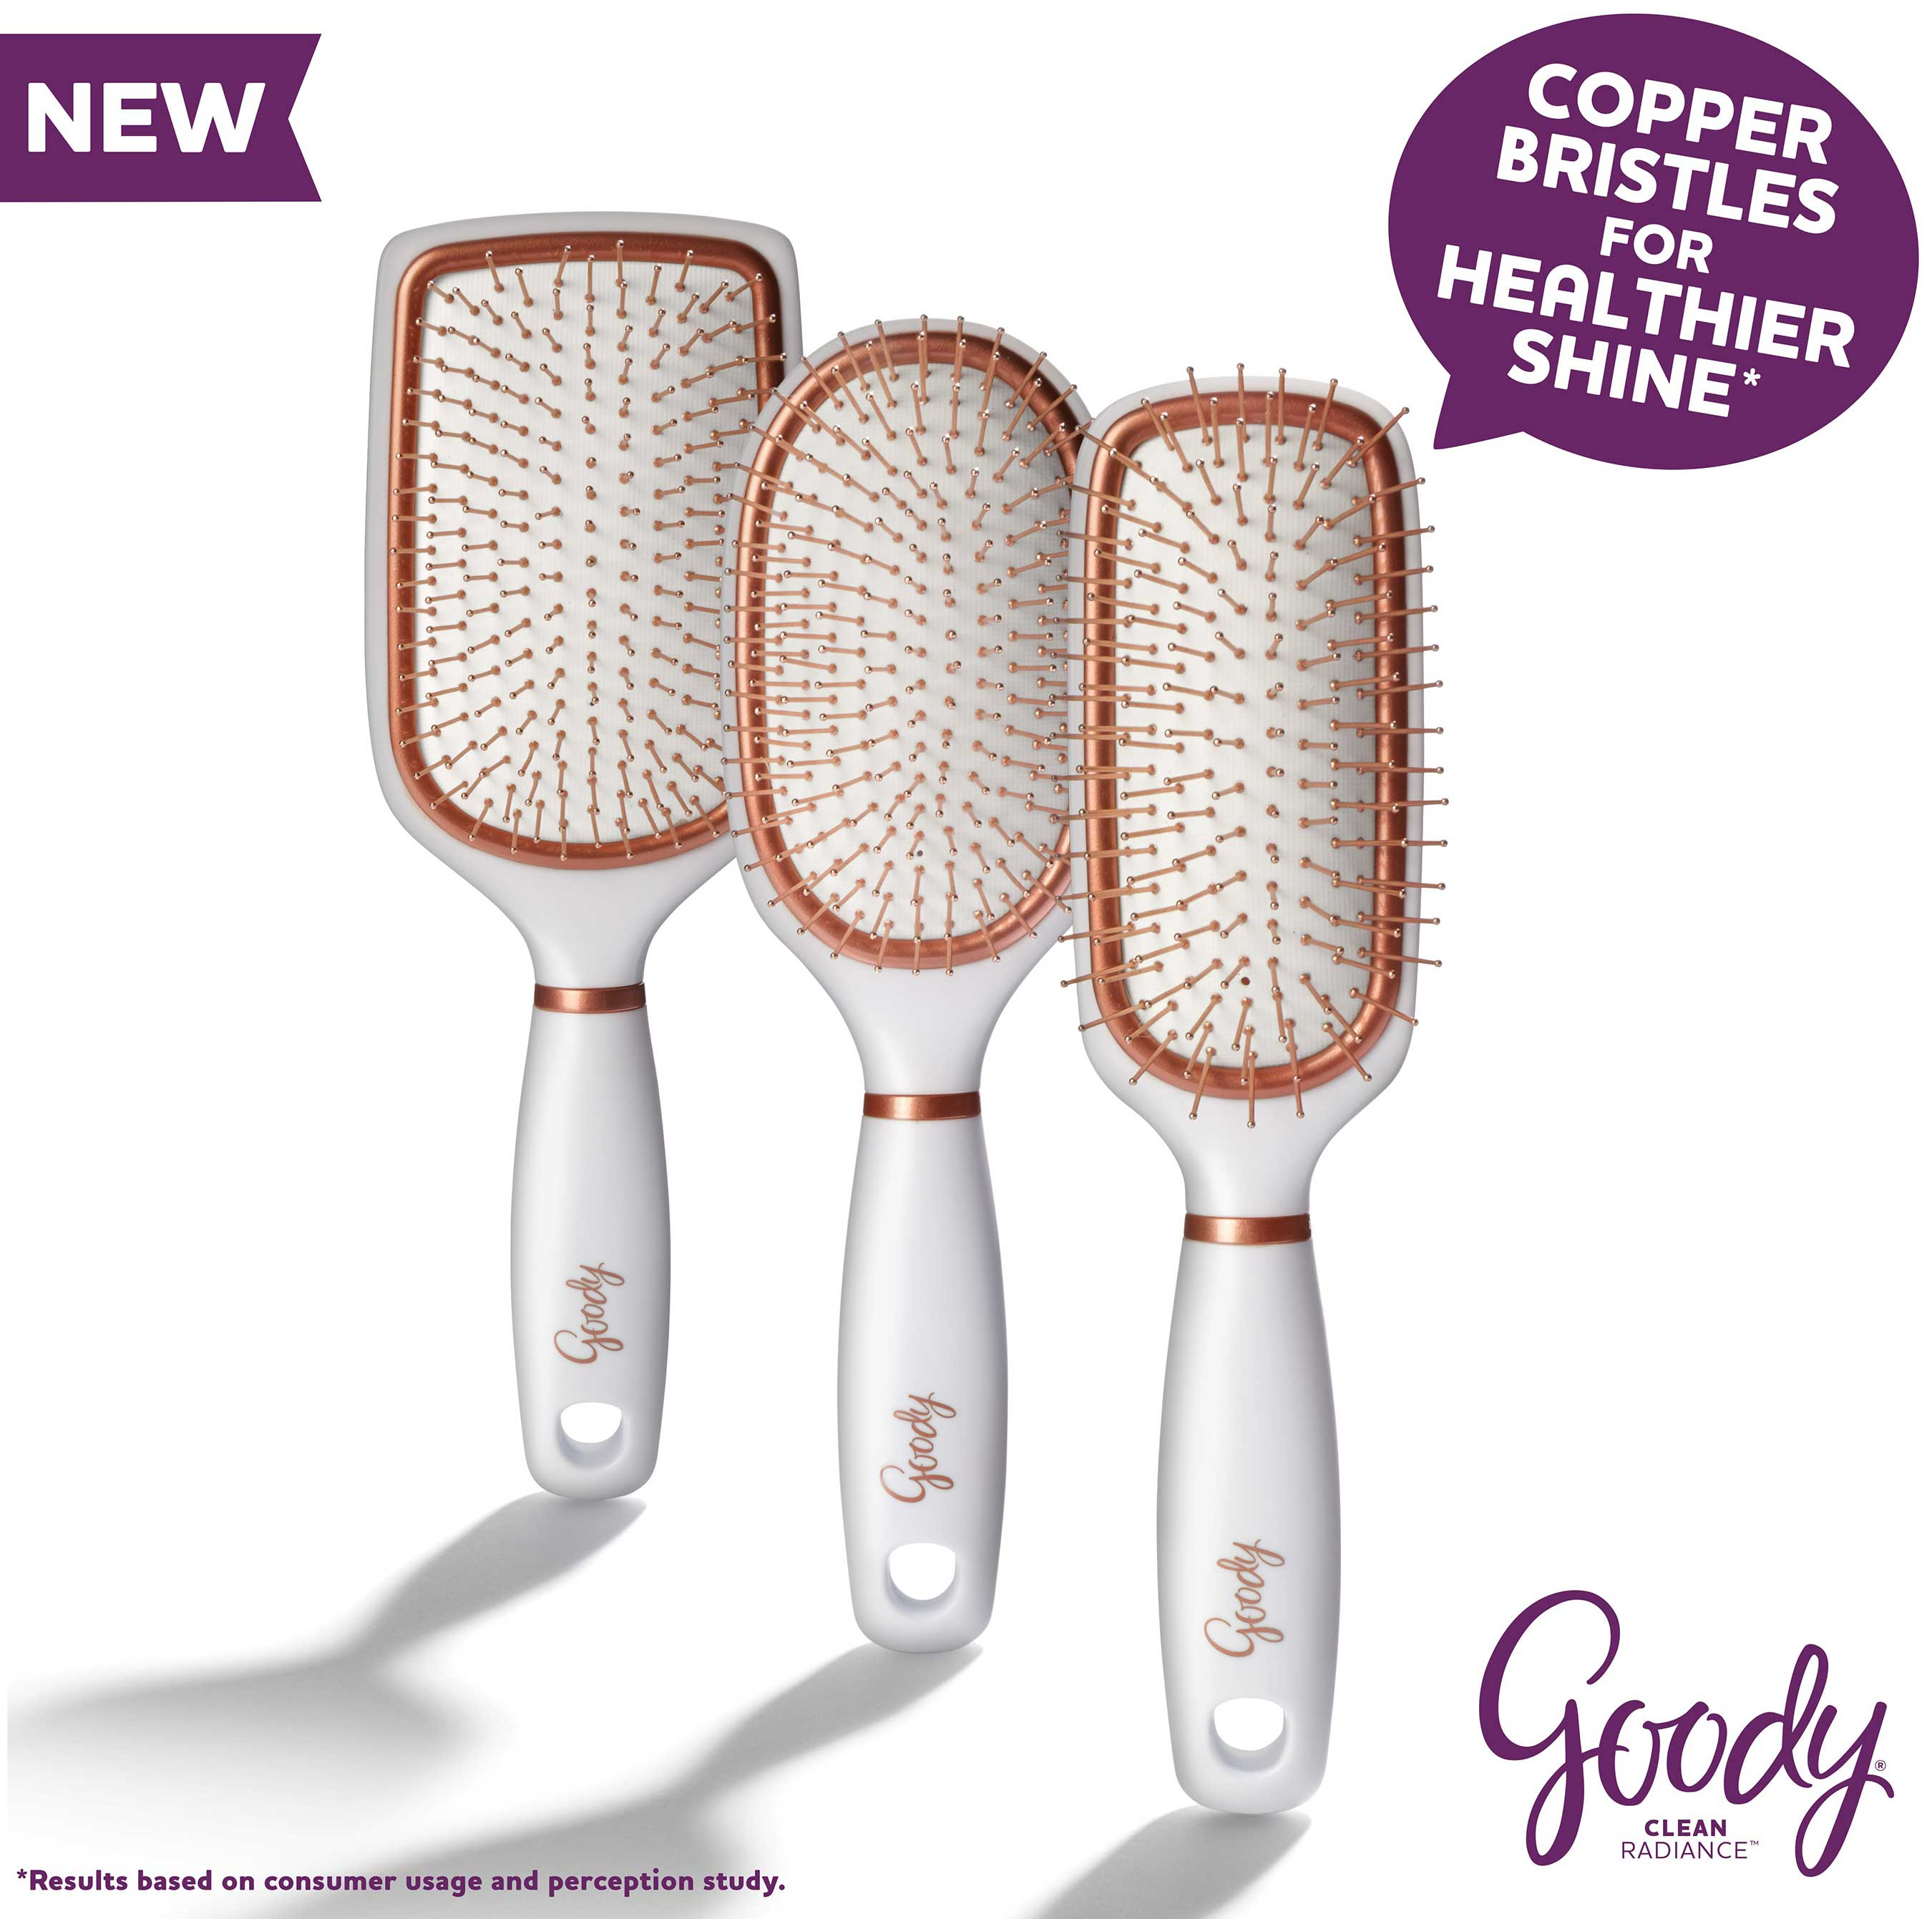 Copper bristles massage the scalp and work through the hair to reduce buildup that occurs in hair over time, and restores natural moisture balance in hair.